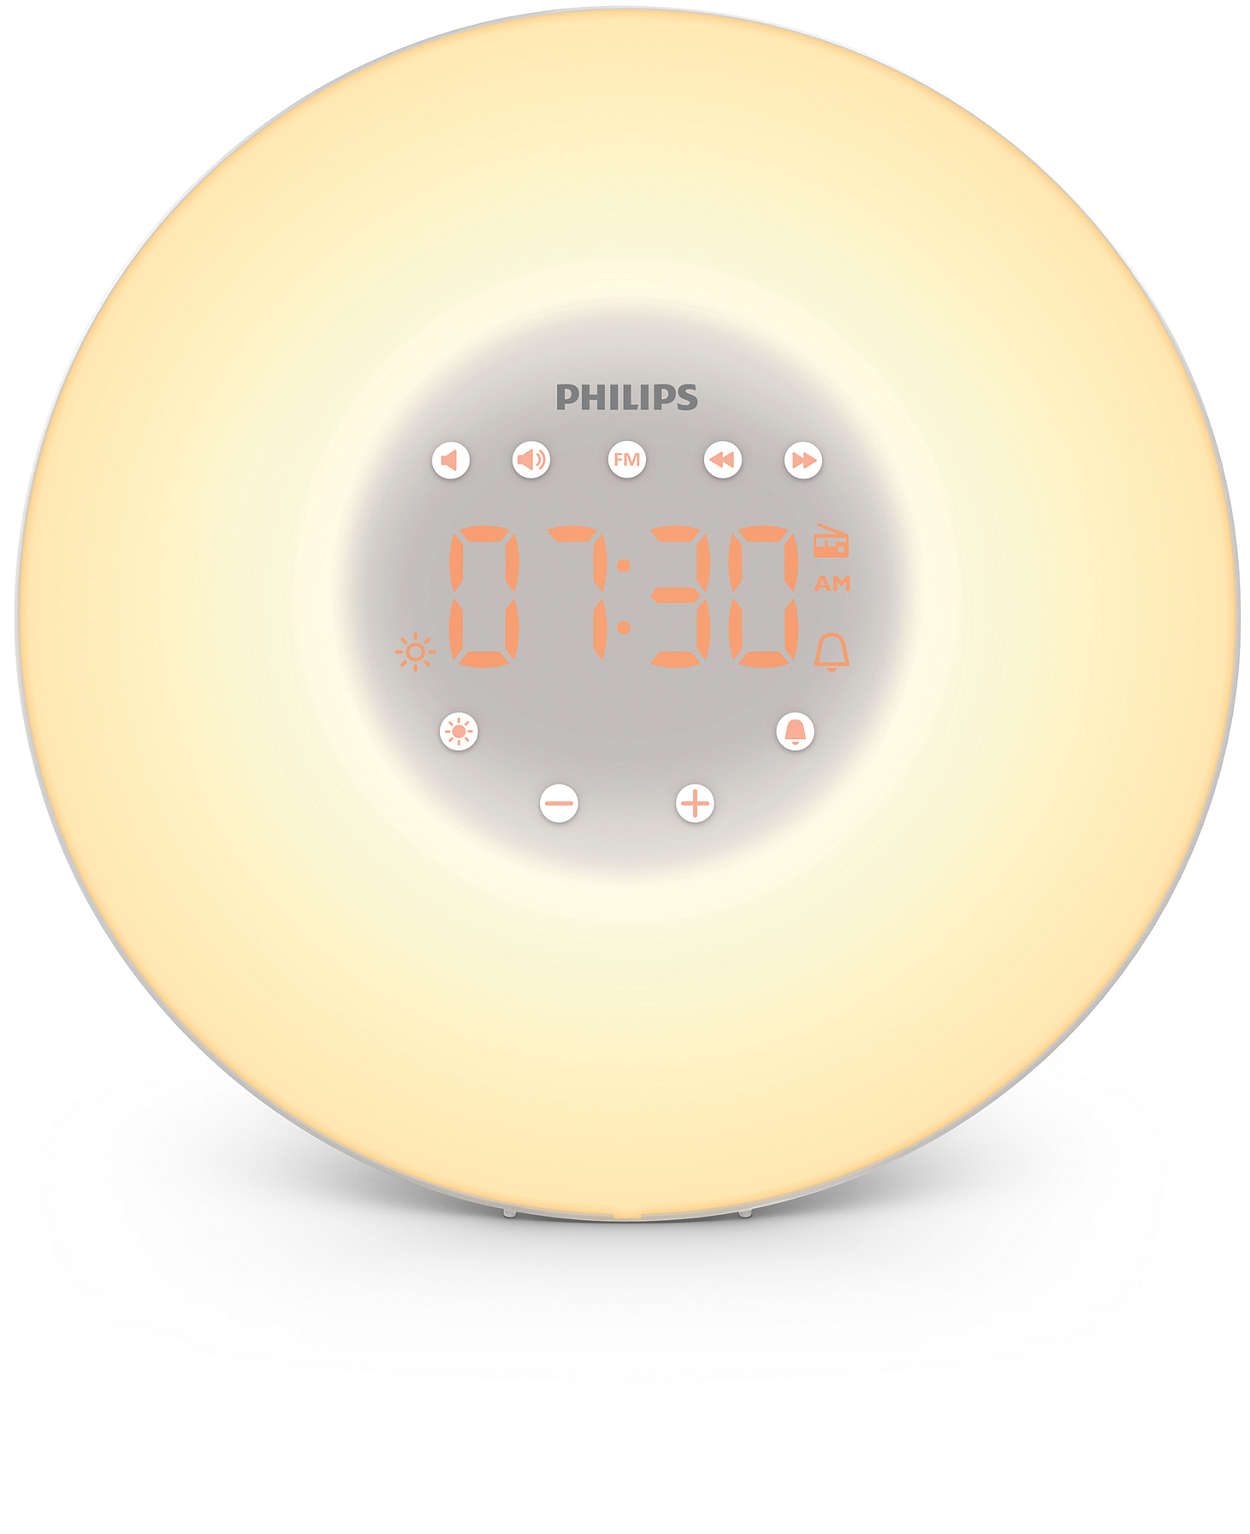 201 Veil Lumi 232 Re Hf3505 01 Philips